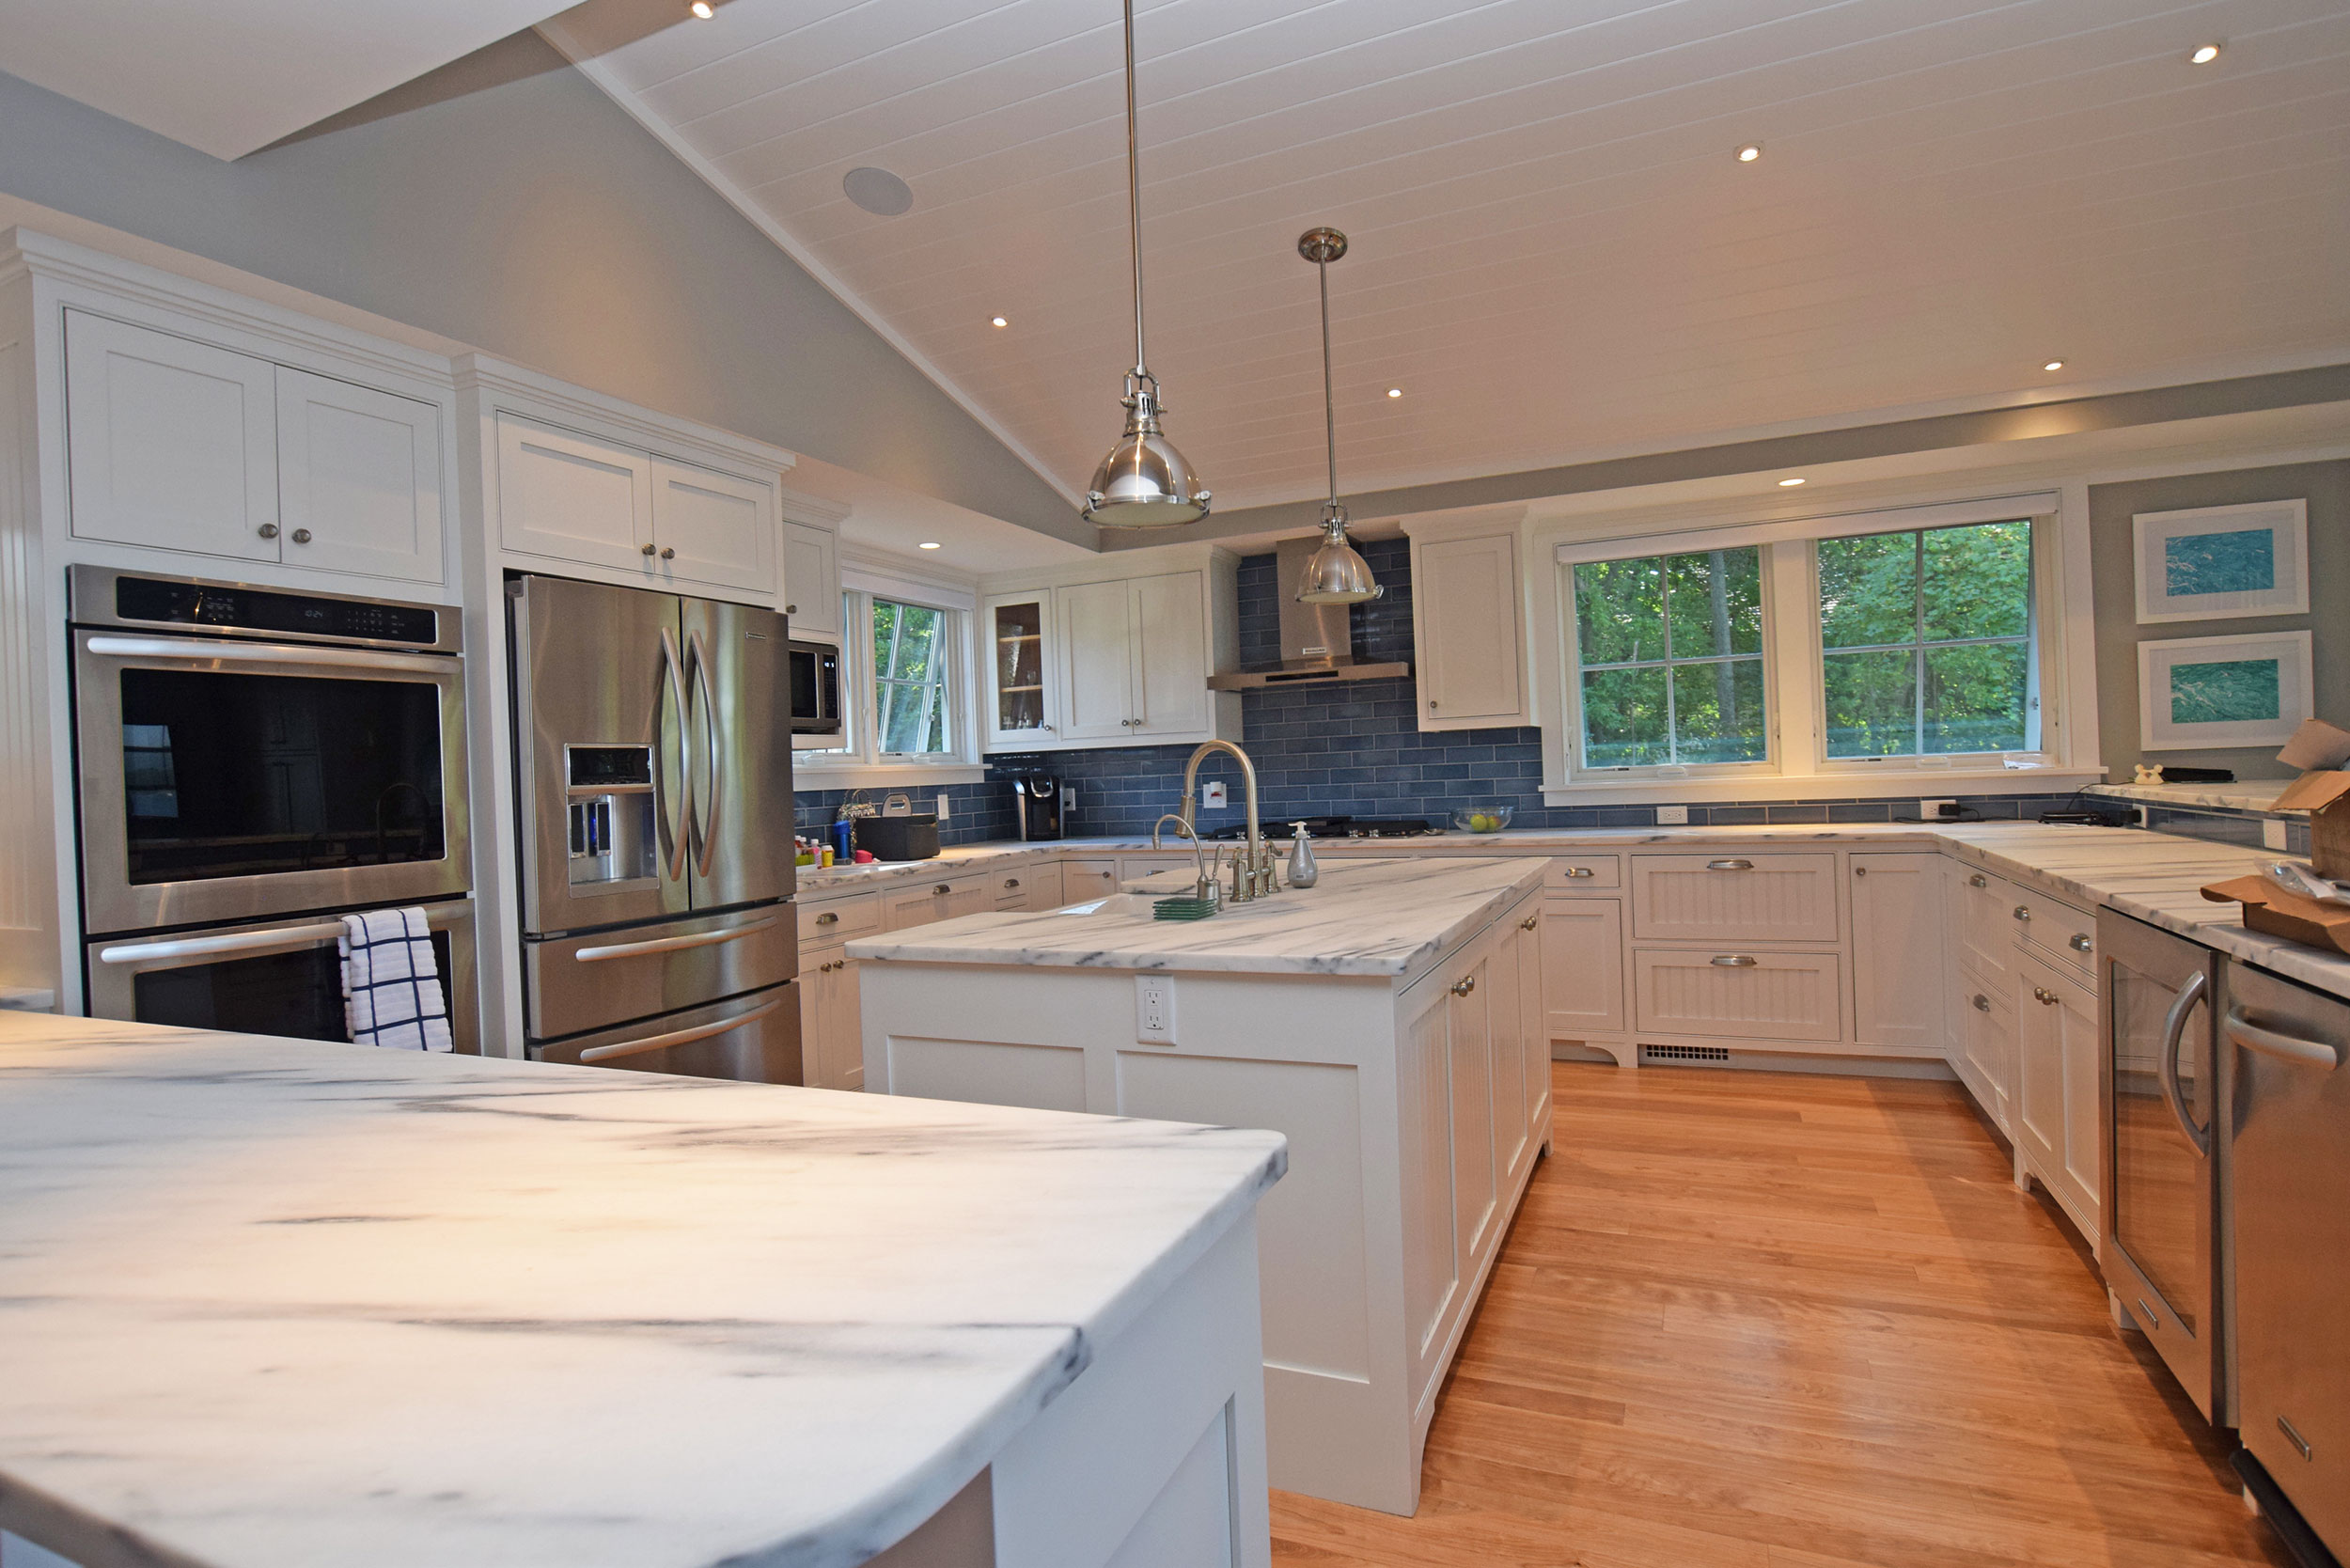 Lakehouse-kitchen-DSC_0023.jpg